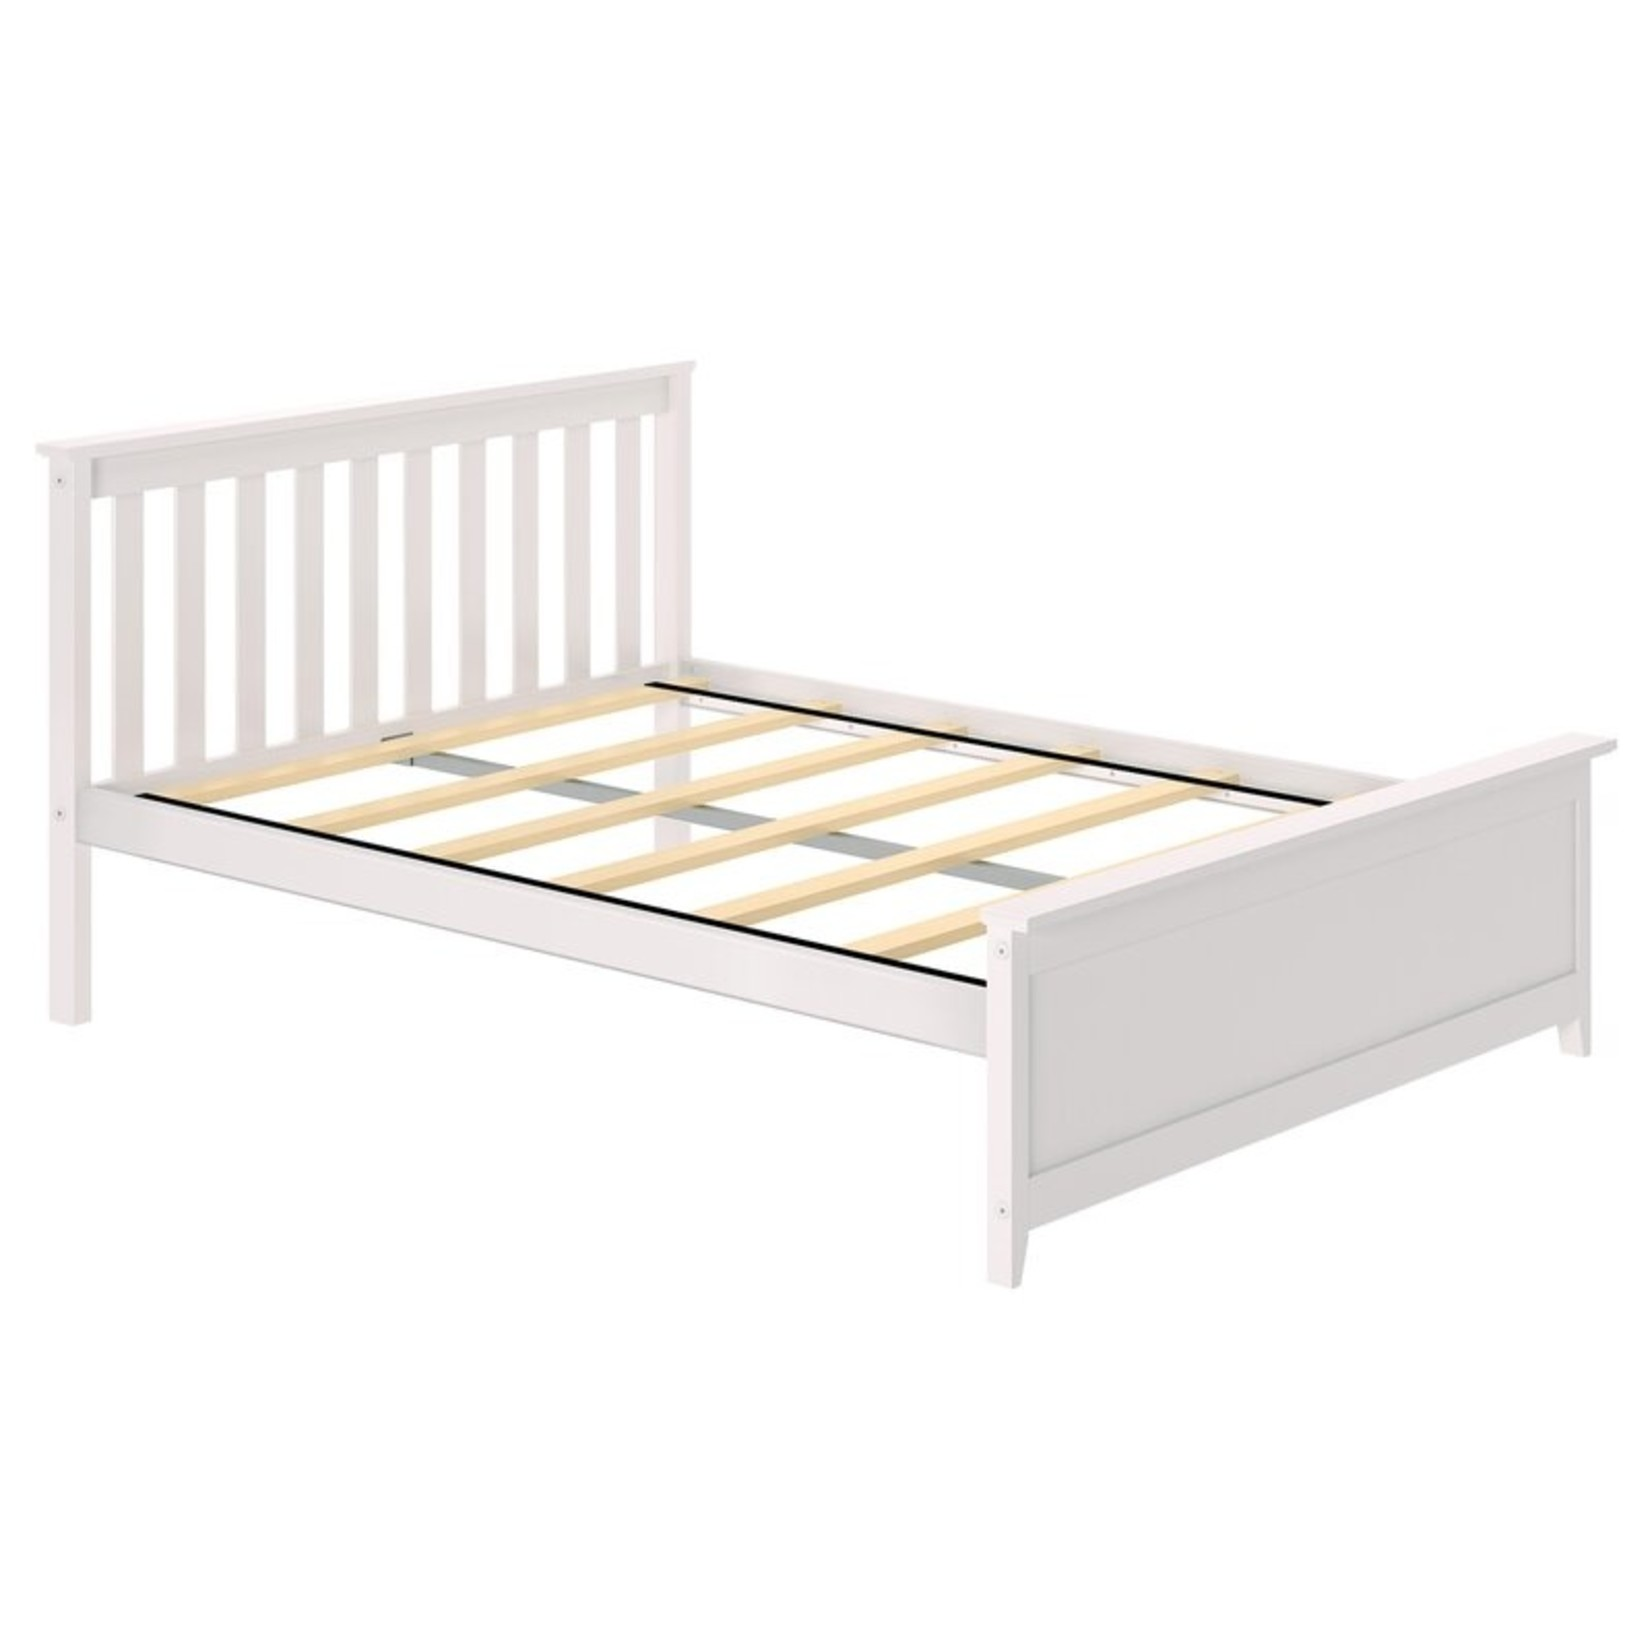 * Full - Bolin Solid Wood Platform Bed by Harriet Bee- White